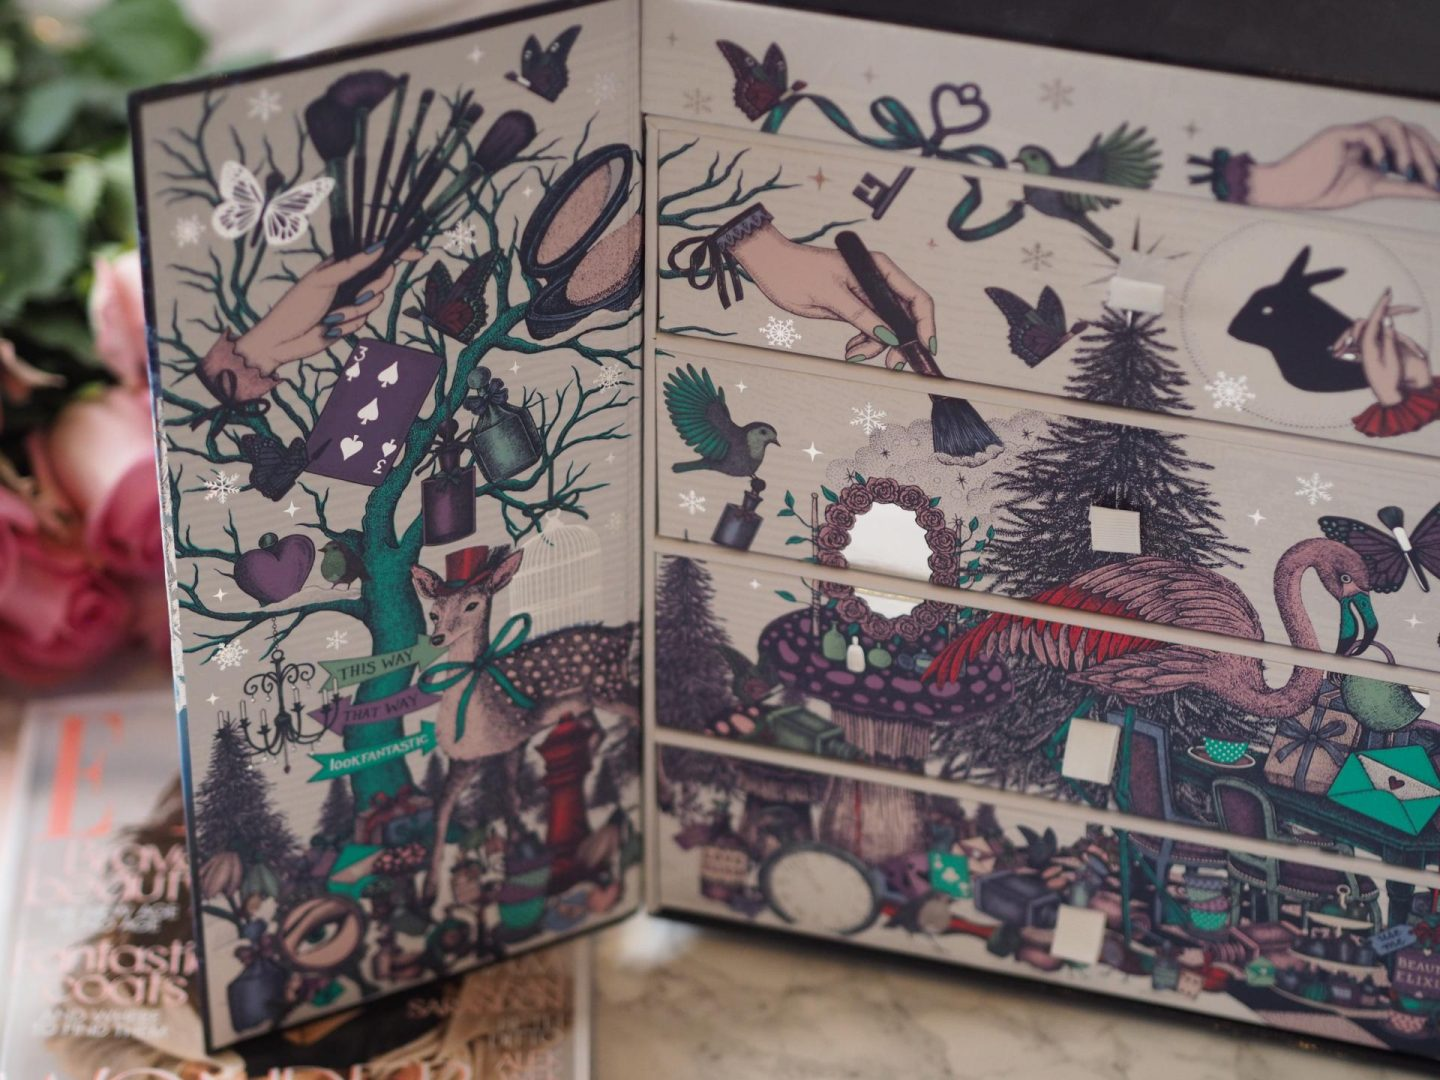 Lookfantastic Beauty in Wonderland Advent Calendar